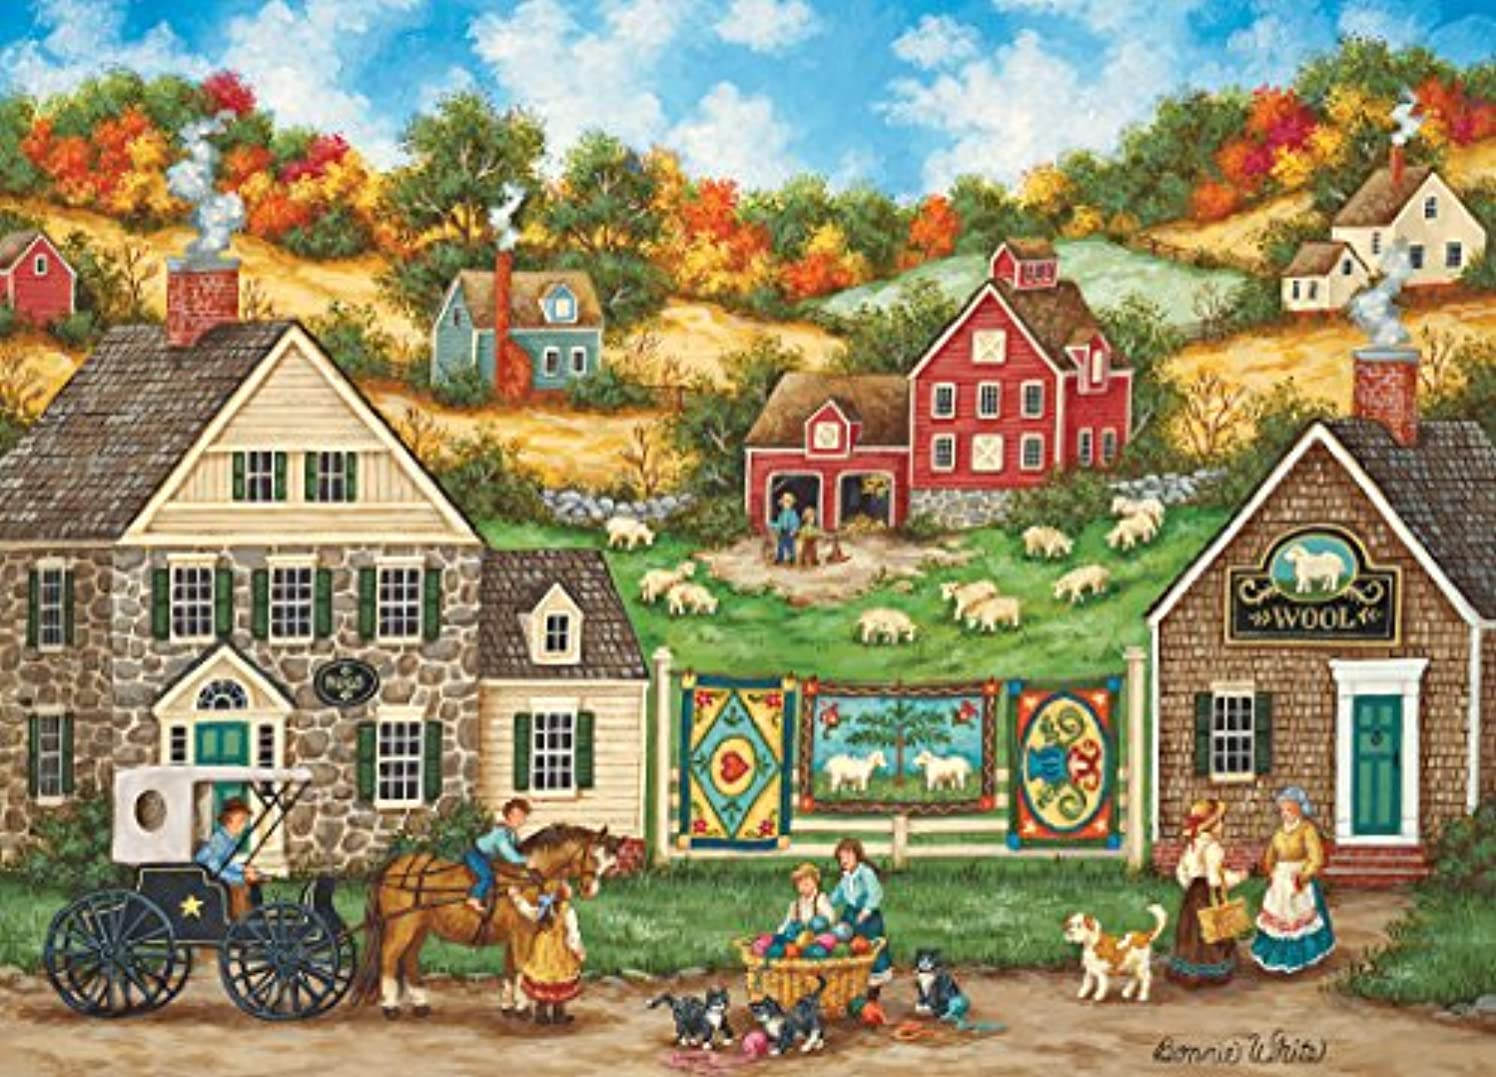 MasterPieces Hometown Gallery Jigsaw Puzzle, Great Balls of Yarn, Featuring Art by Bonnie White, 1000 Pieces